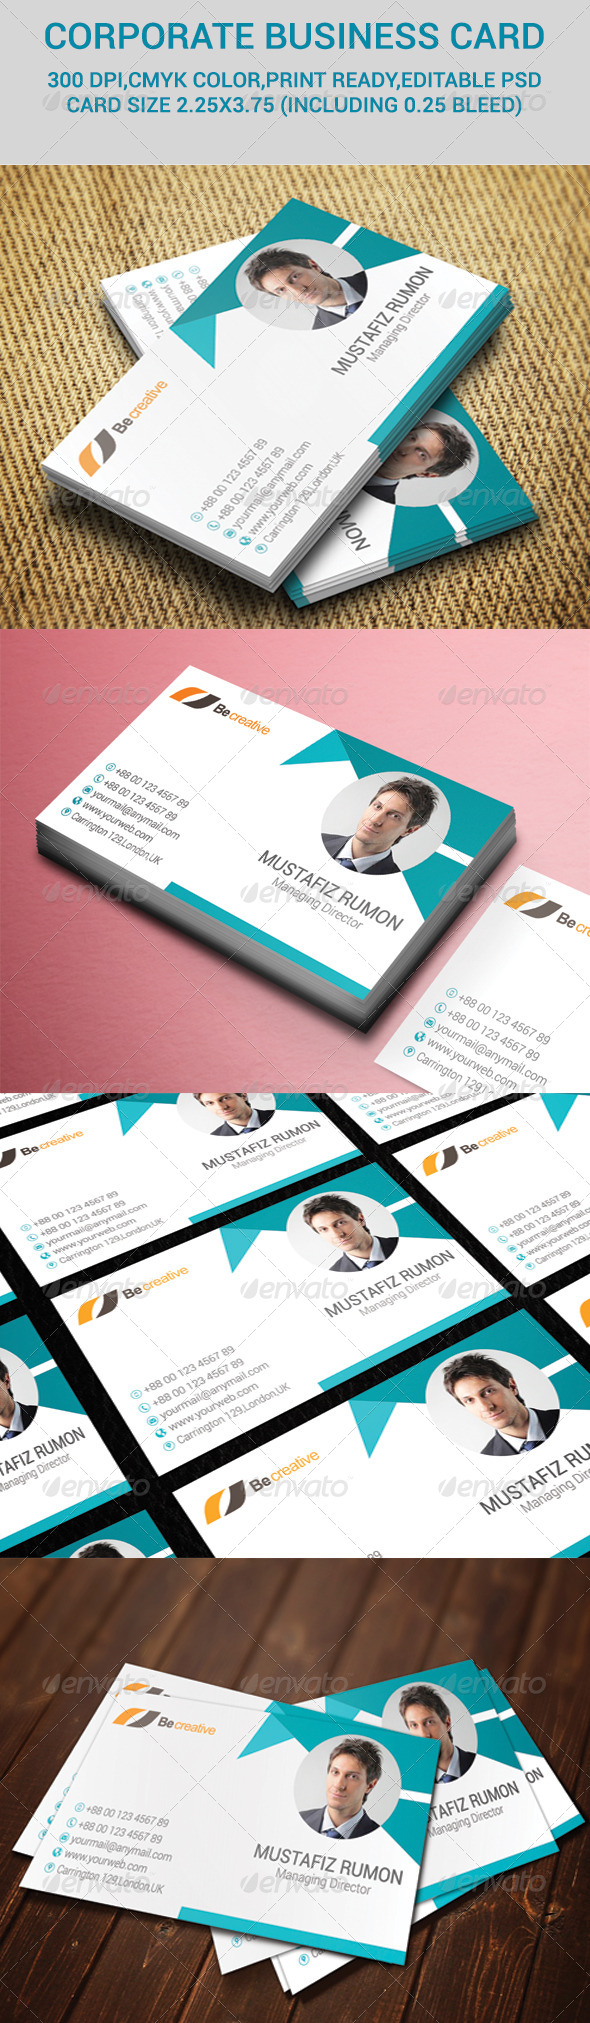 GraphicRiver Corporate Business Card 7229808